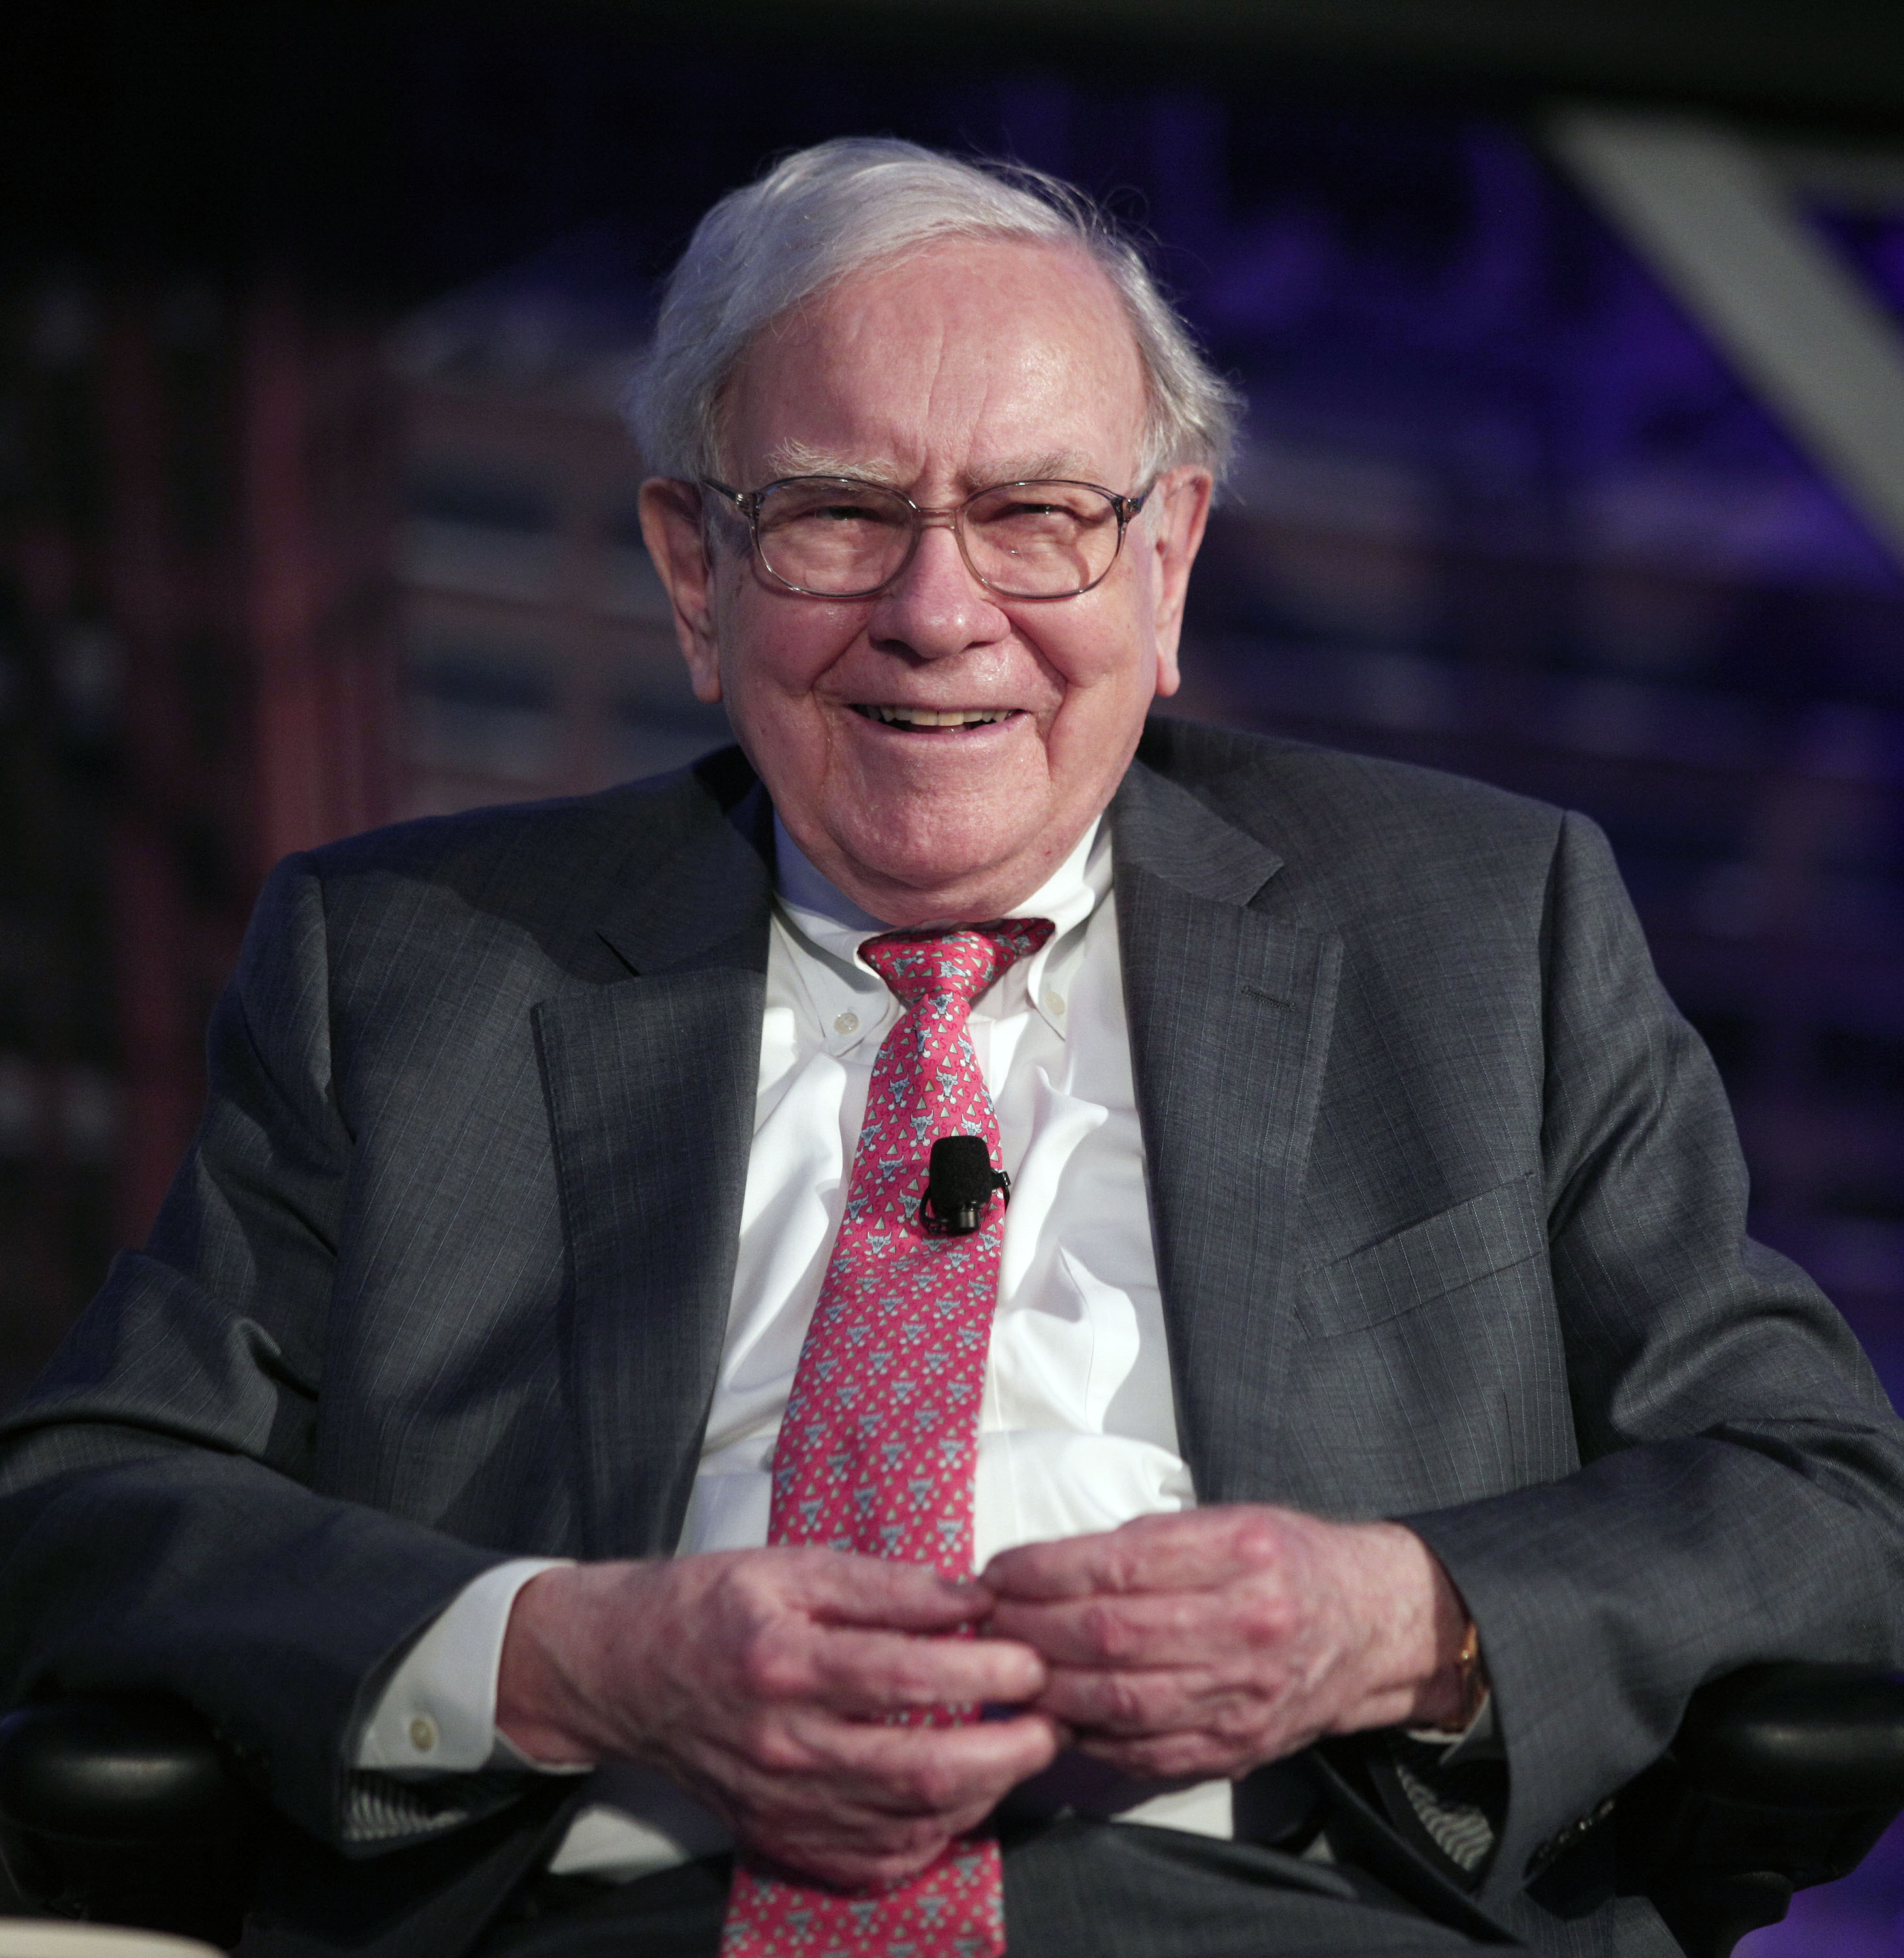 Billionaire investor Warren Buffett speaks at an event on Sept. 18, 2014 in Detroit, Michigan.